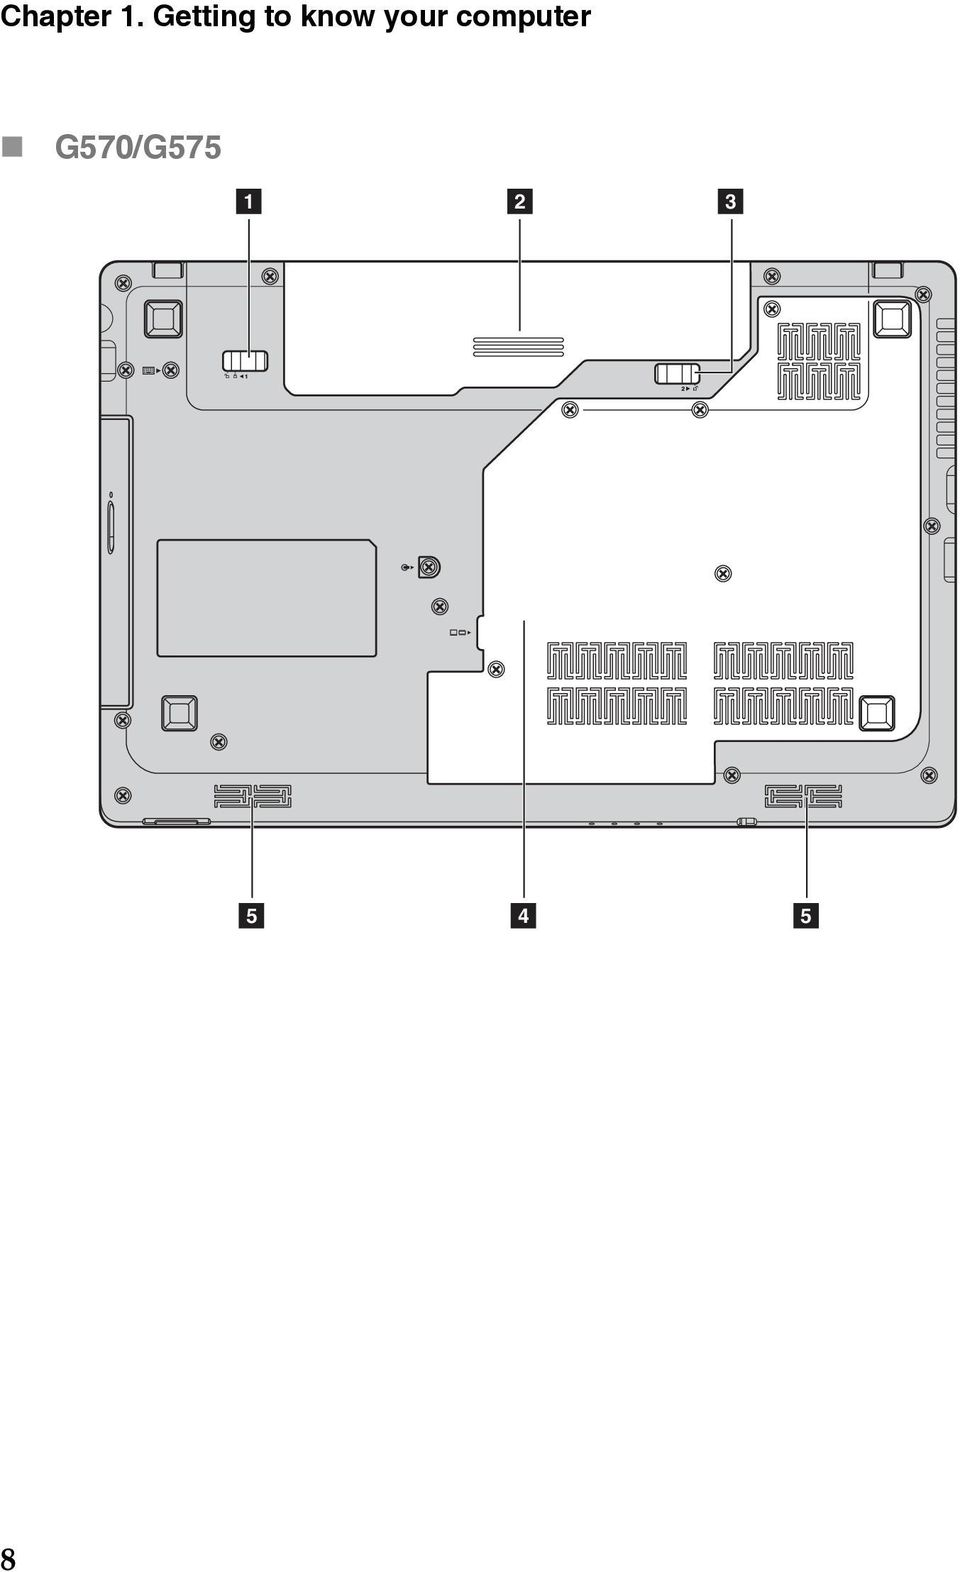 hight resolution of 13 chapter 1 getting to know your computer a b c d e battery latch manual battery pack battery latch spring loaded hard disk drive hdd memory cpu